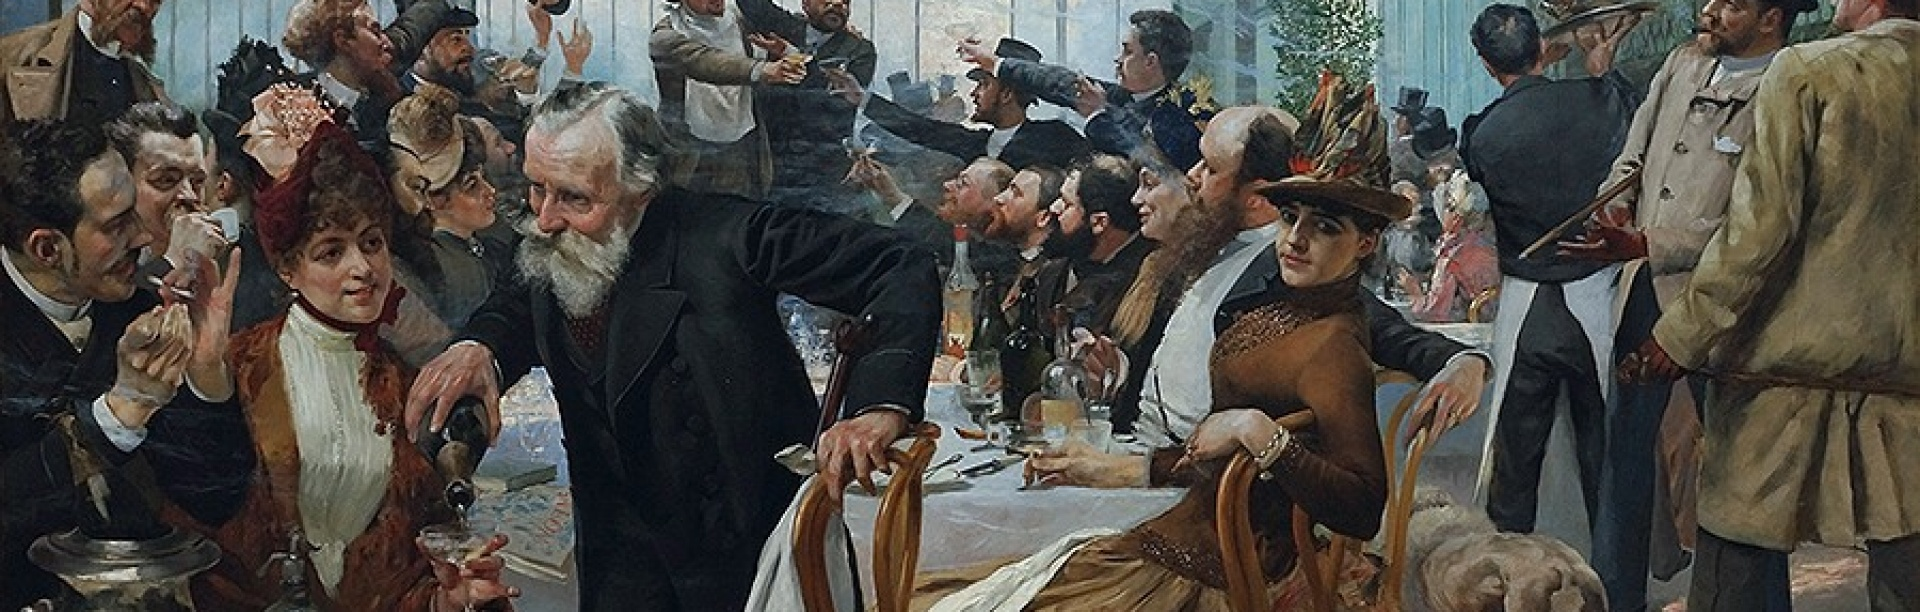 By encouraging random encounters and free-flowing conversation, coffee shops are engines of innovation. The Scandinavian Artists' Lunch at Café Ledoyen, Paris: Varnishing Day 1886, by Hugo Birger.